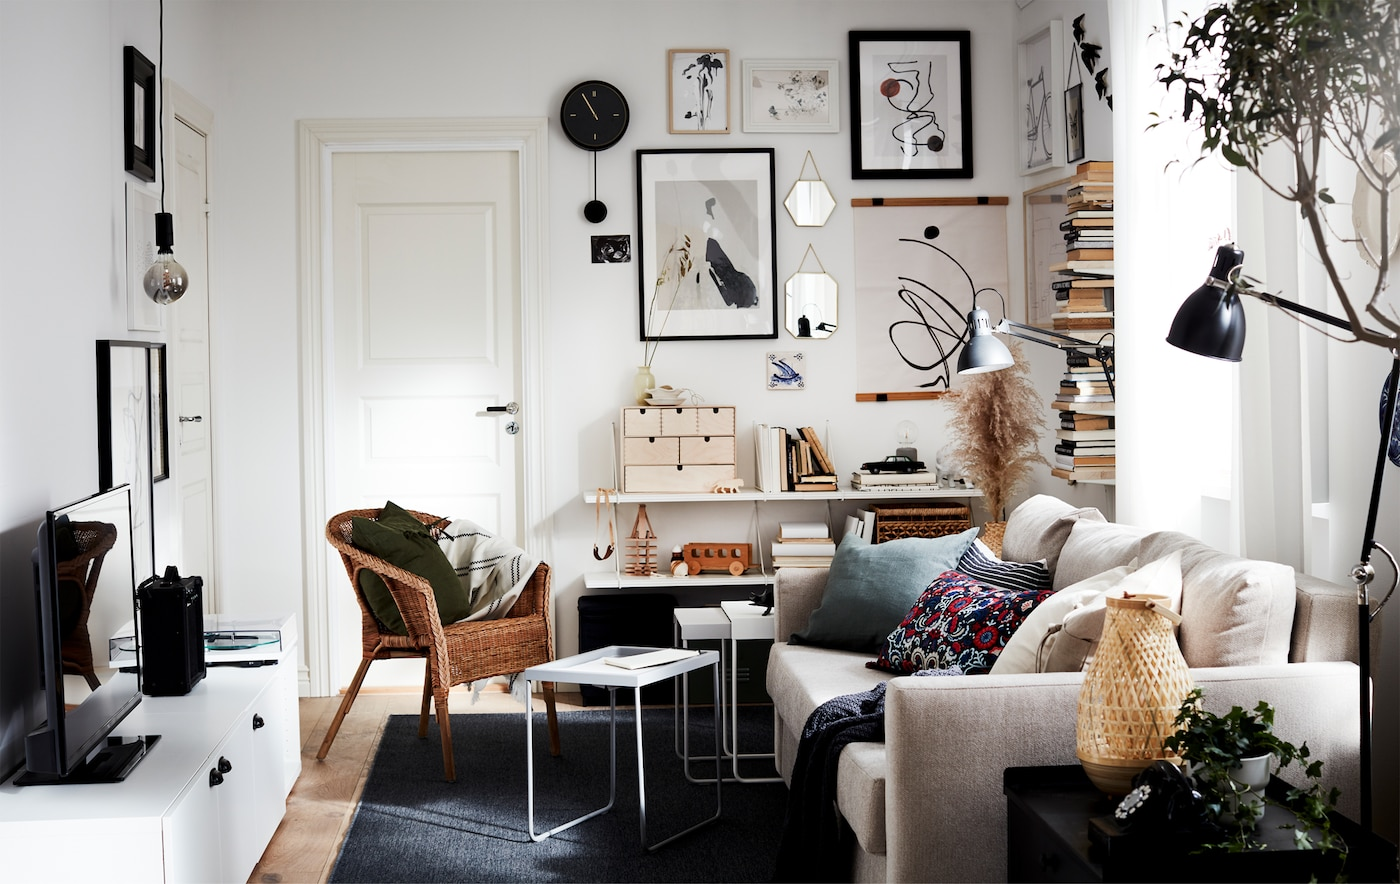 Link to 'A touch of love is all it takes' - image of a living room with a beige sofa-bed and black accents.